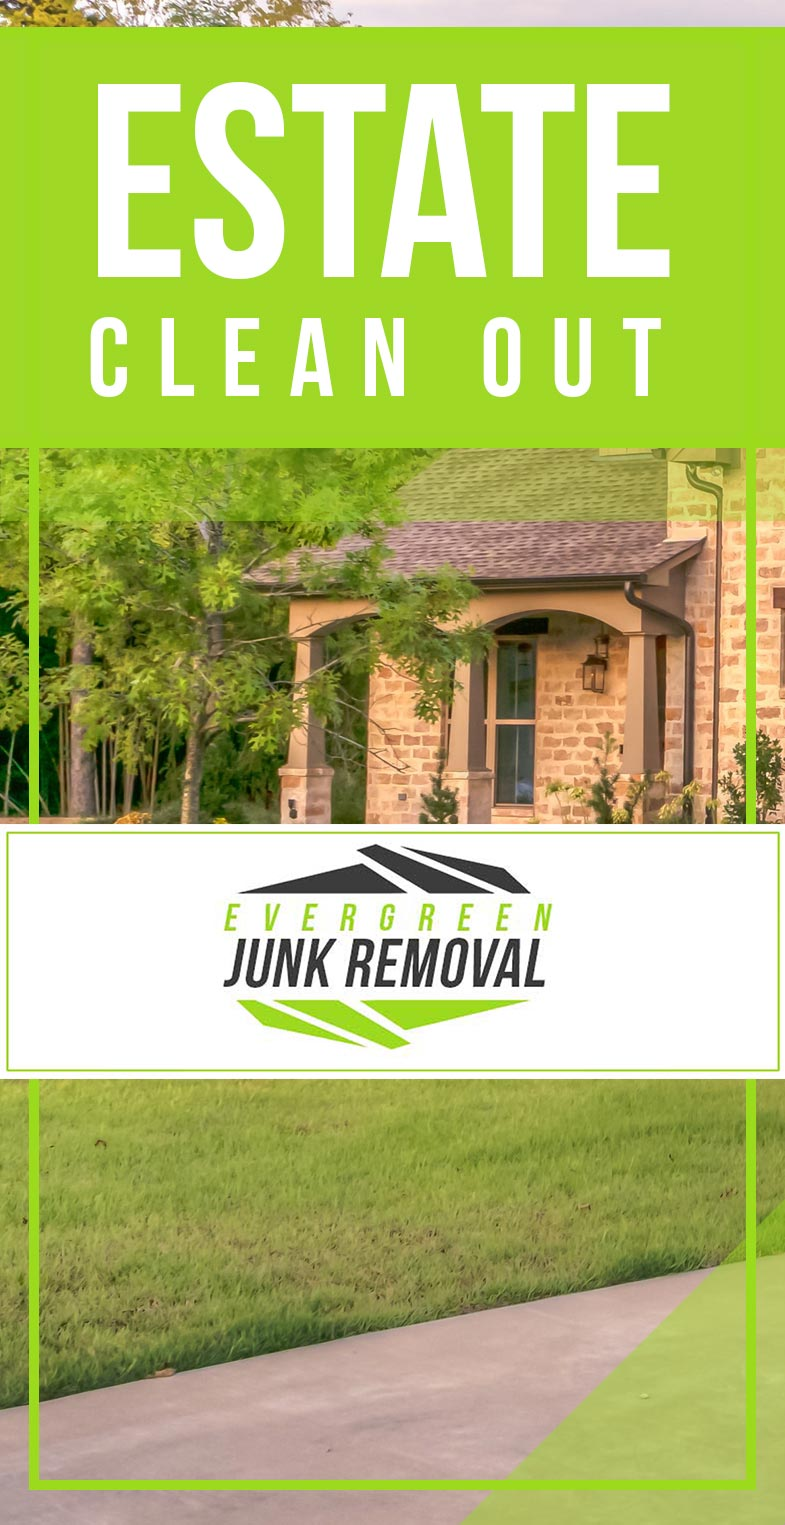 Junk Removal Hallandale Beach Estate Clean Out